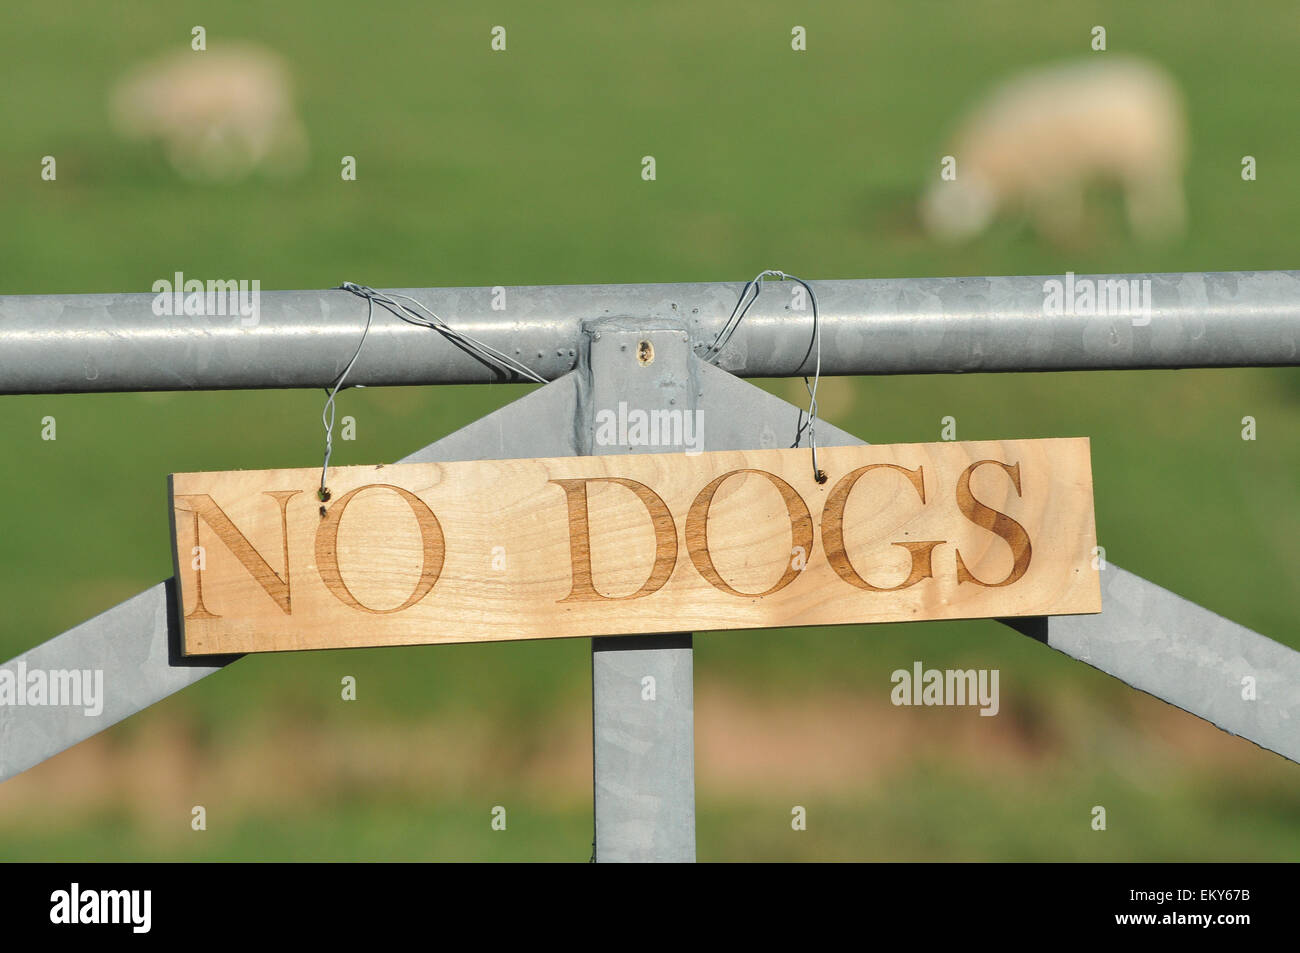 A no dogs sign with sheep in the background. - Stock Image